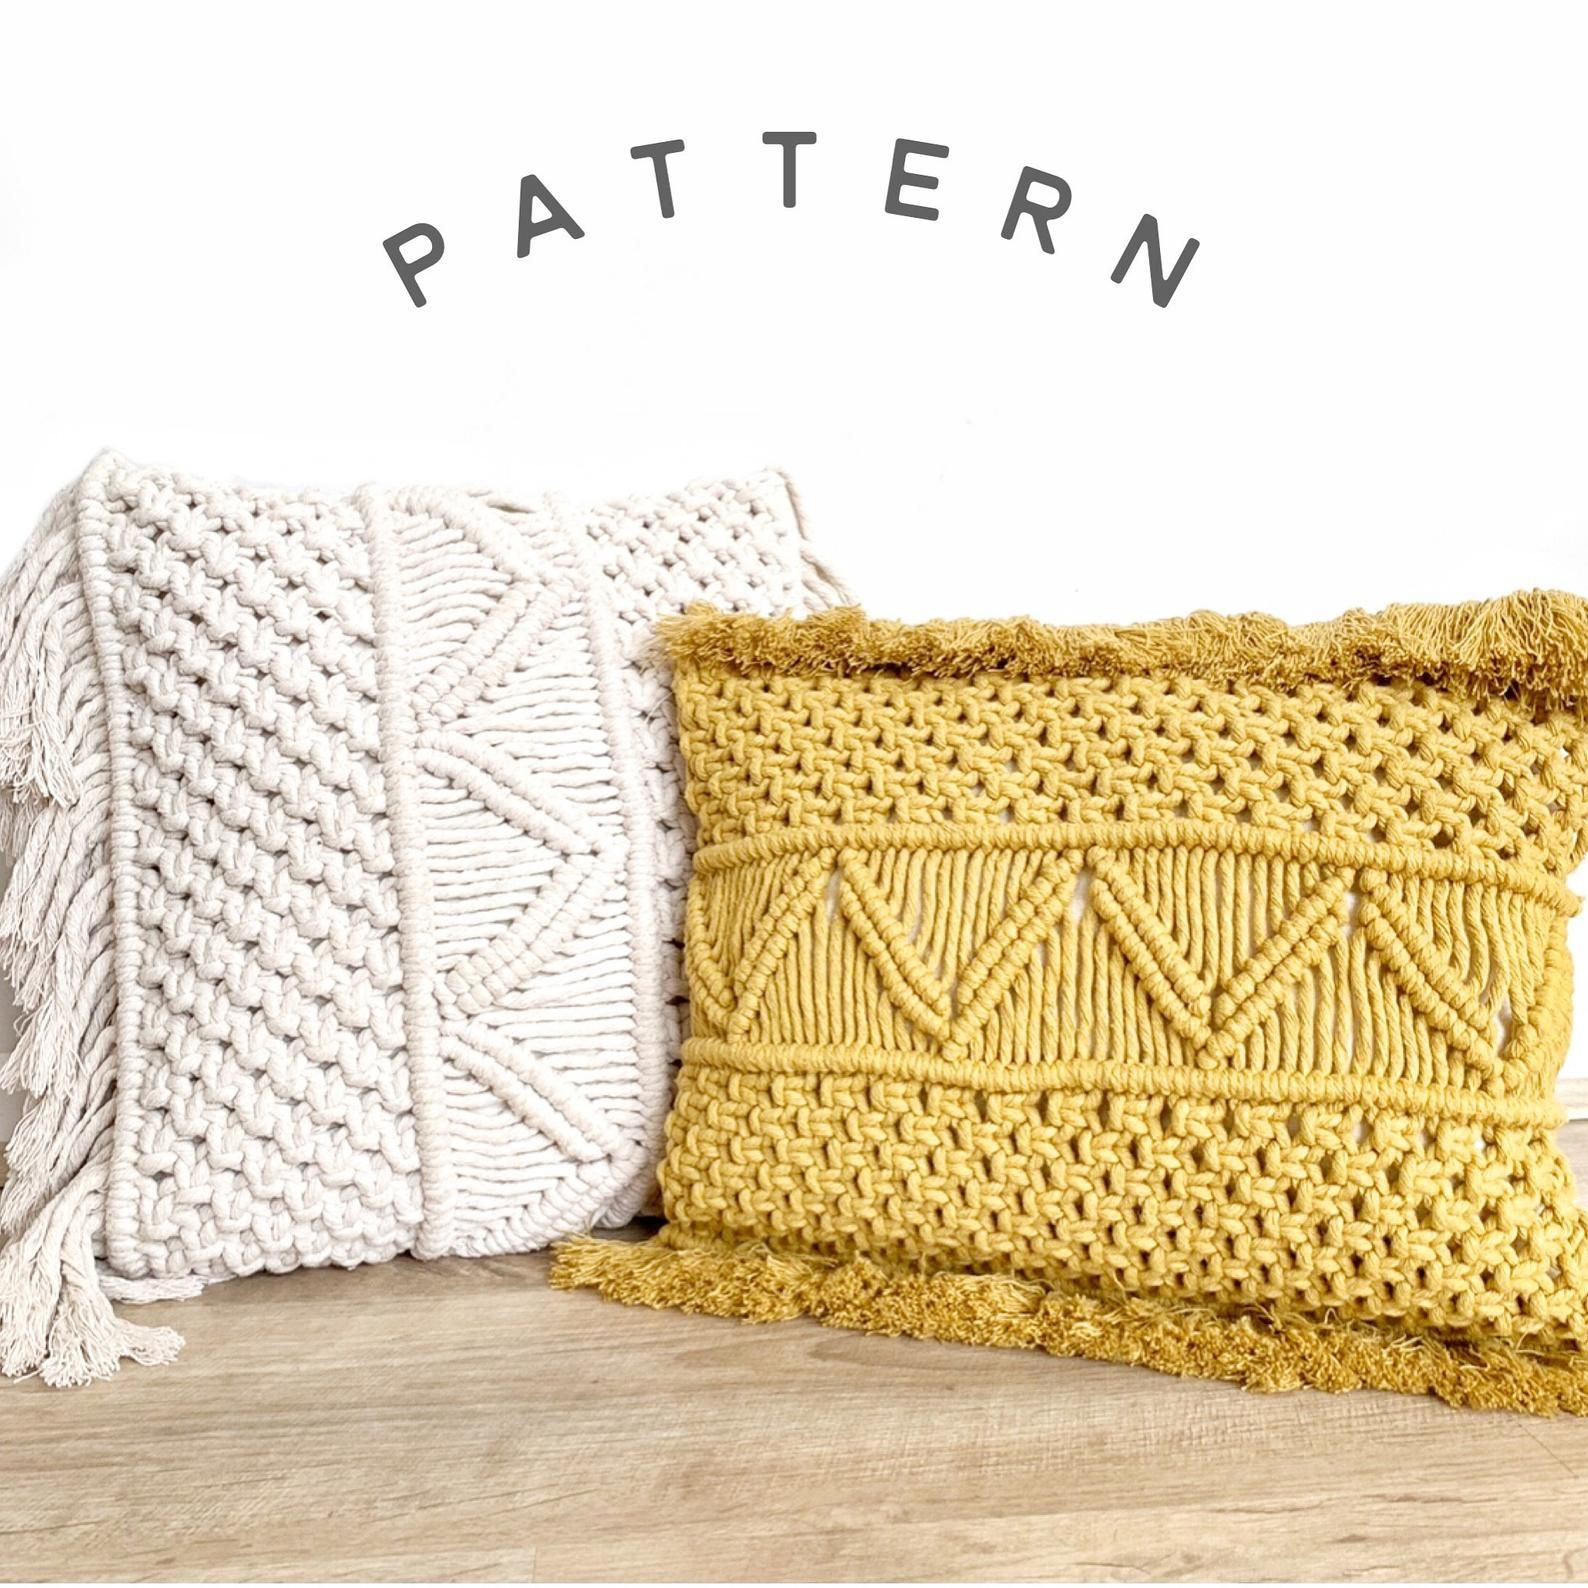 Macrame Pattern Tutorial For Pillow Cover Cushion Case Diy Etsy In 2020 Macrame Patterns Tutorials Cushion Cover Pattern Macrame Patterns